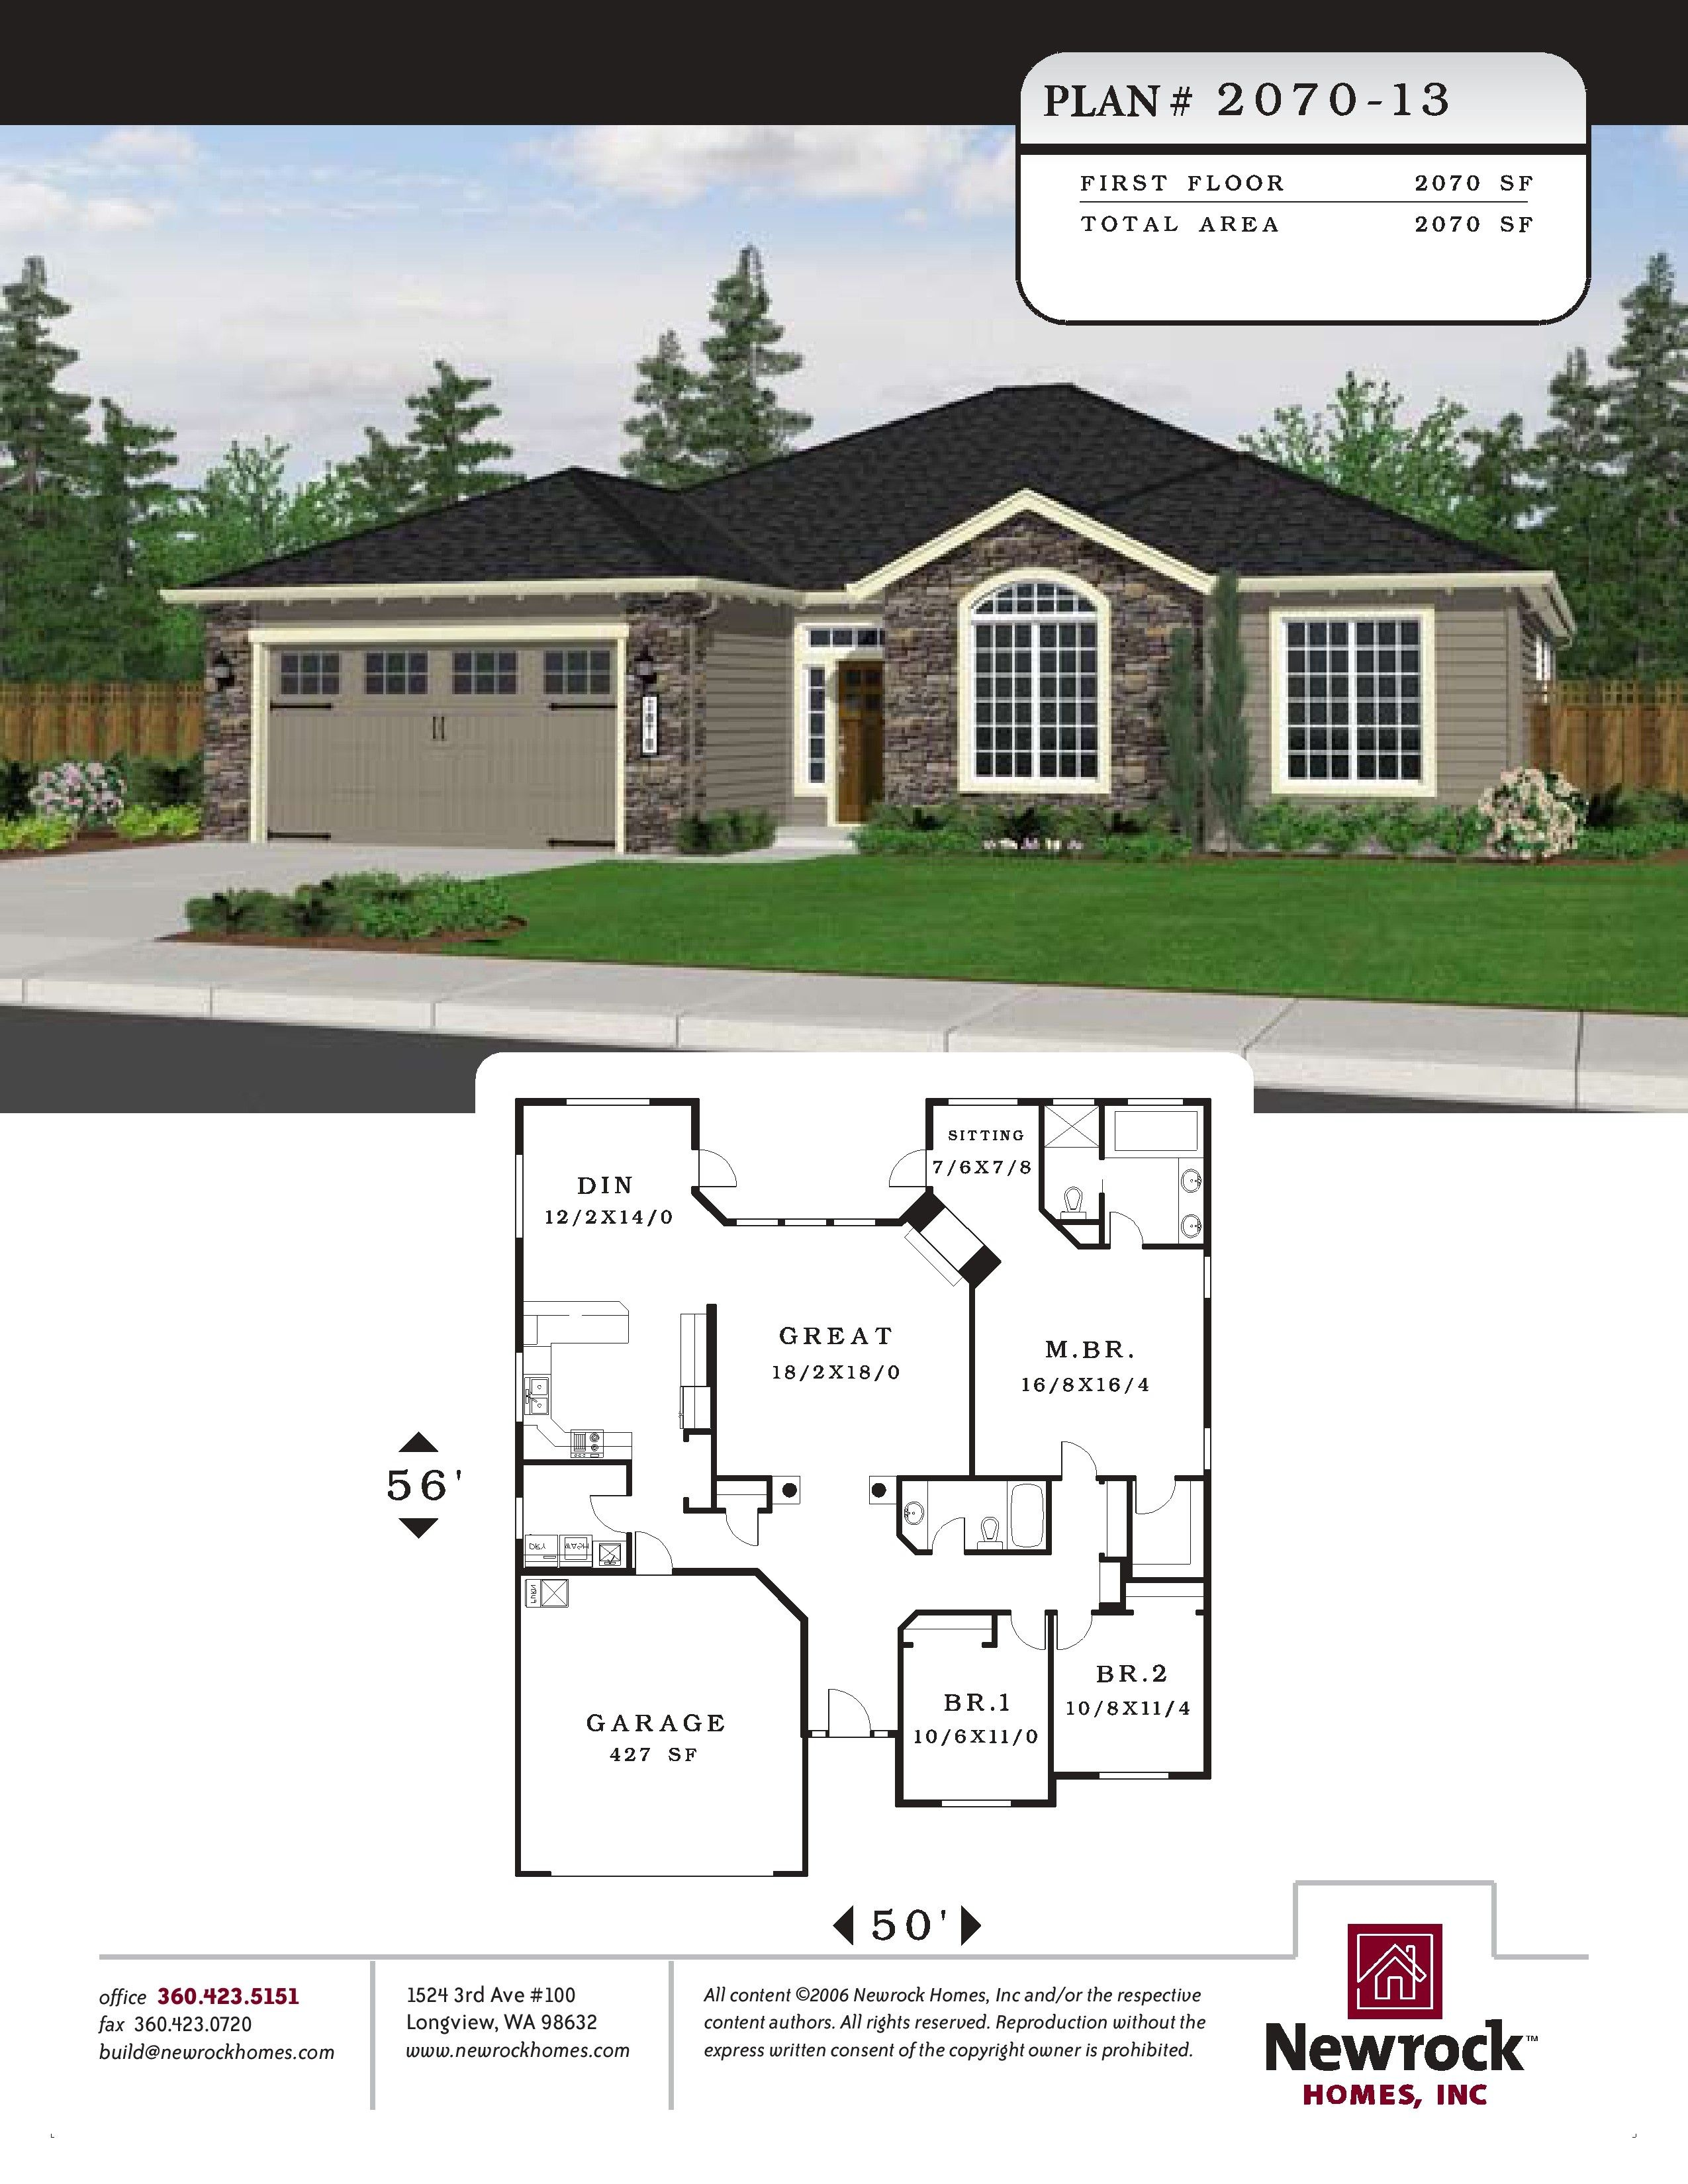 Plan 2070 13 Newrock Homes House Construction Plan Sims House Plans Ranch Style House Plans